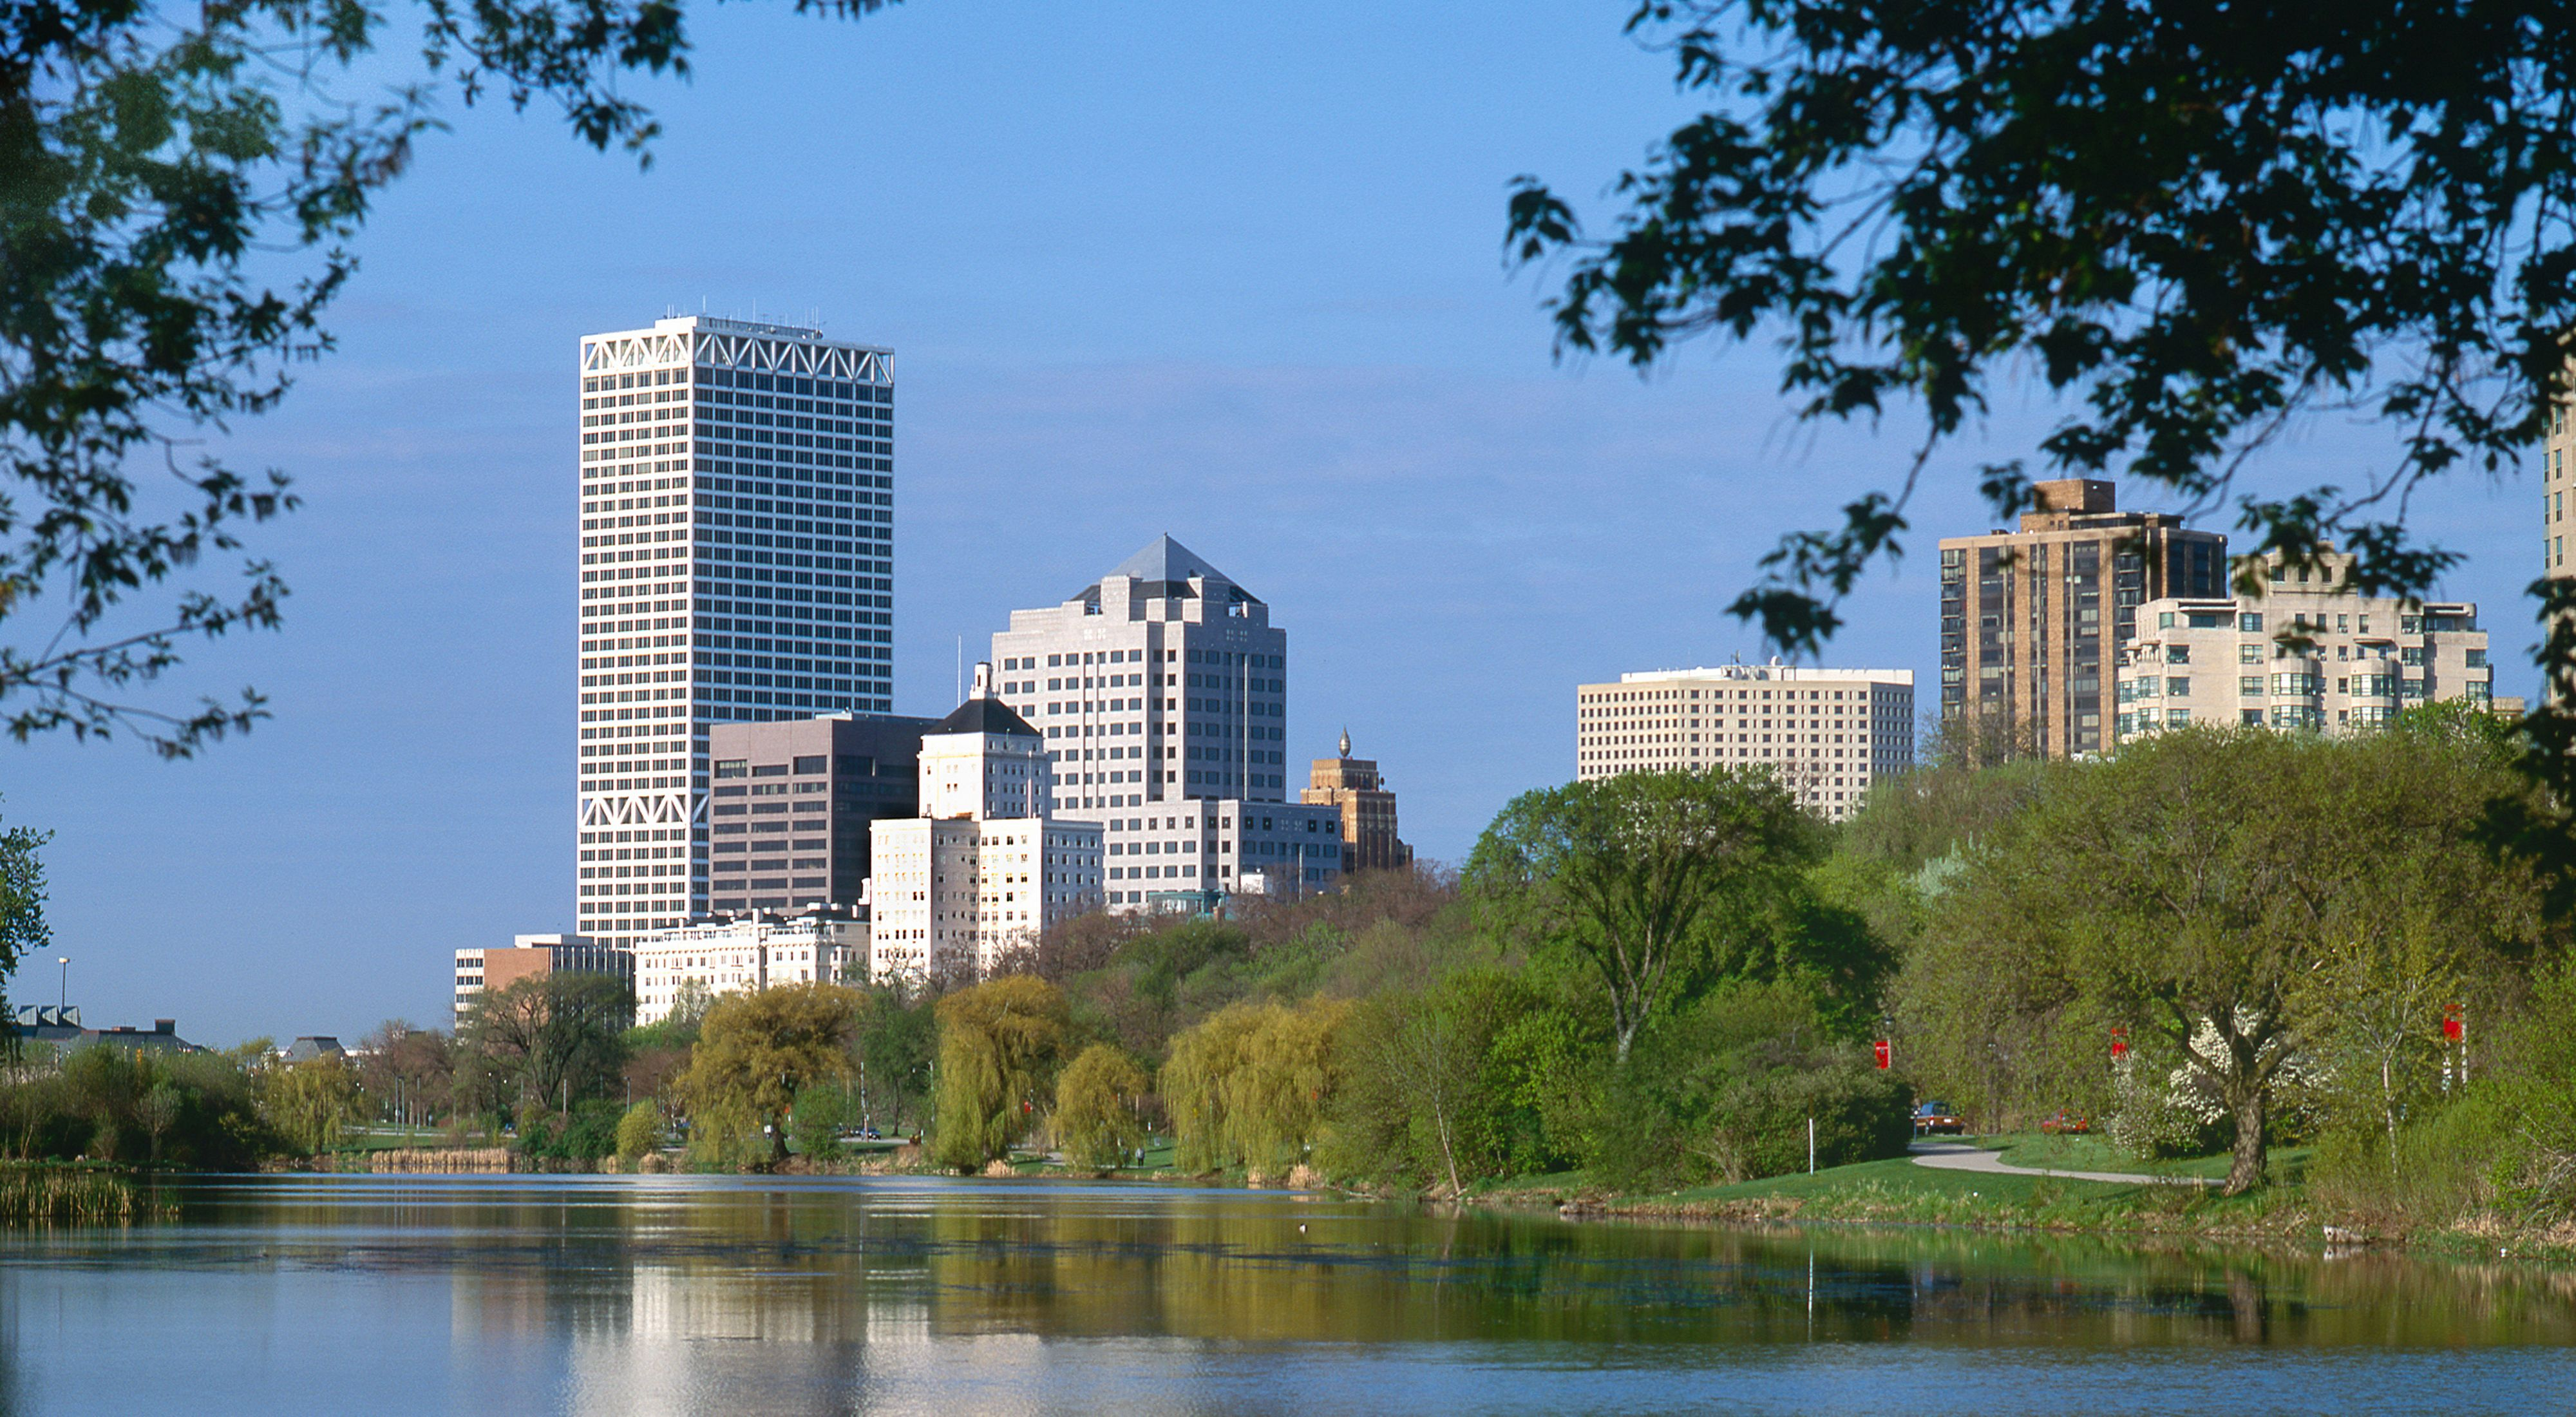 View of a city skyline with tall buildings in the background and trees and grass along the shoreline of a small lake.